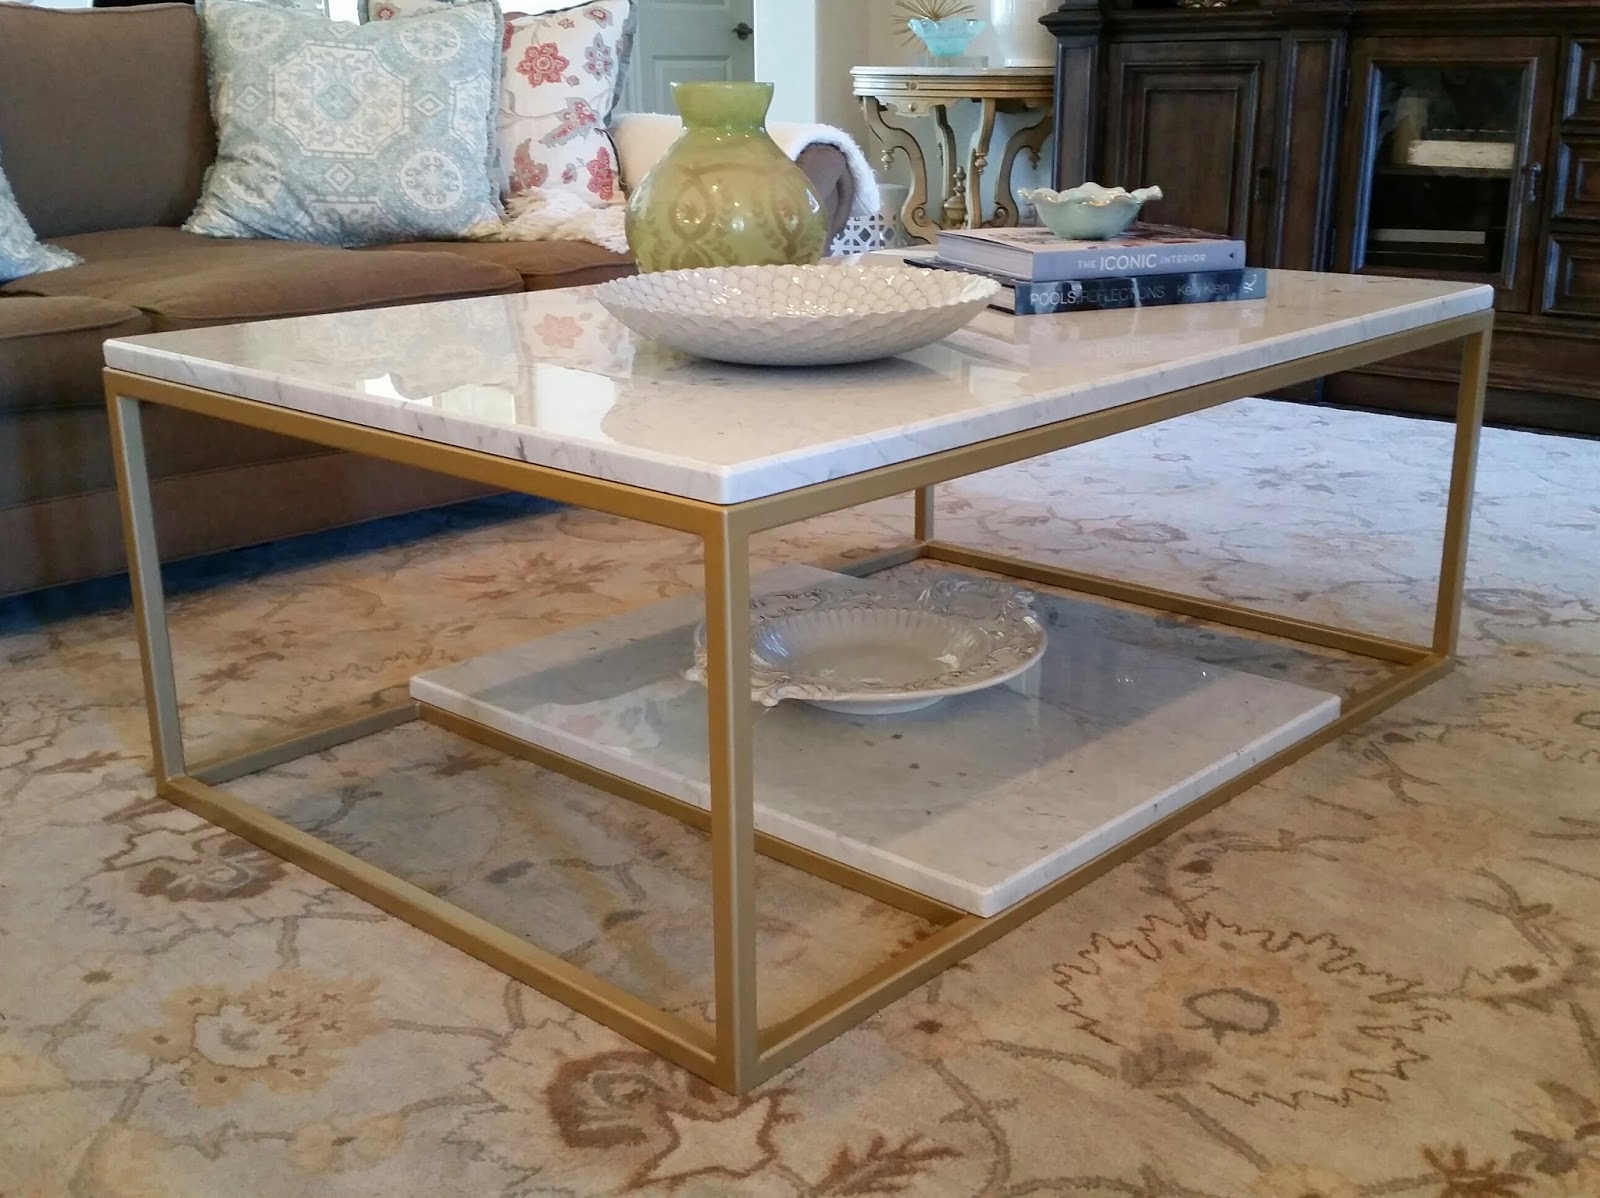 Heres A Custom Metal Coffee Table We Built Dimensions Were 56 Long X 36 Wide 19 High The Finish On 1 Tubing Is Metallic Gold With Clear